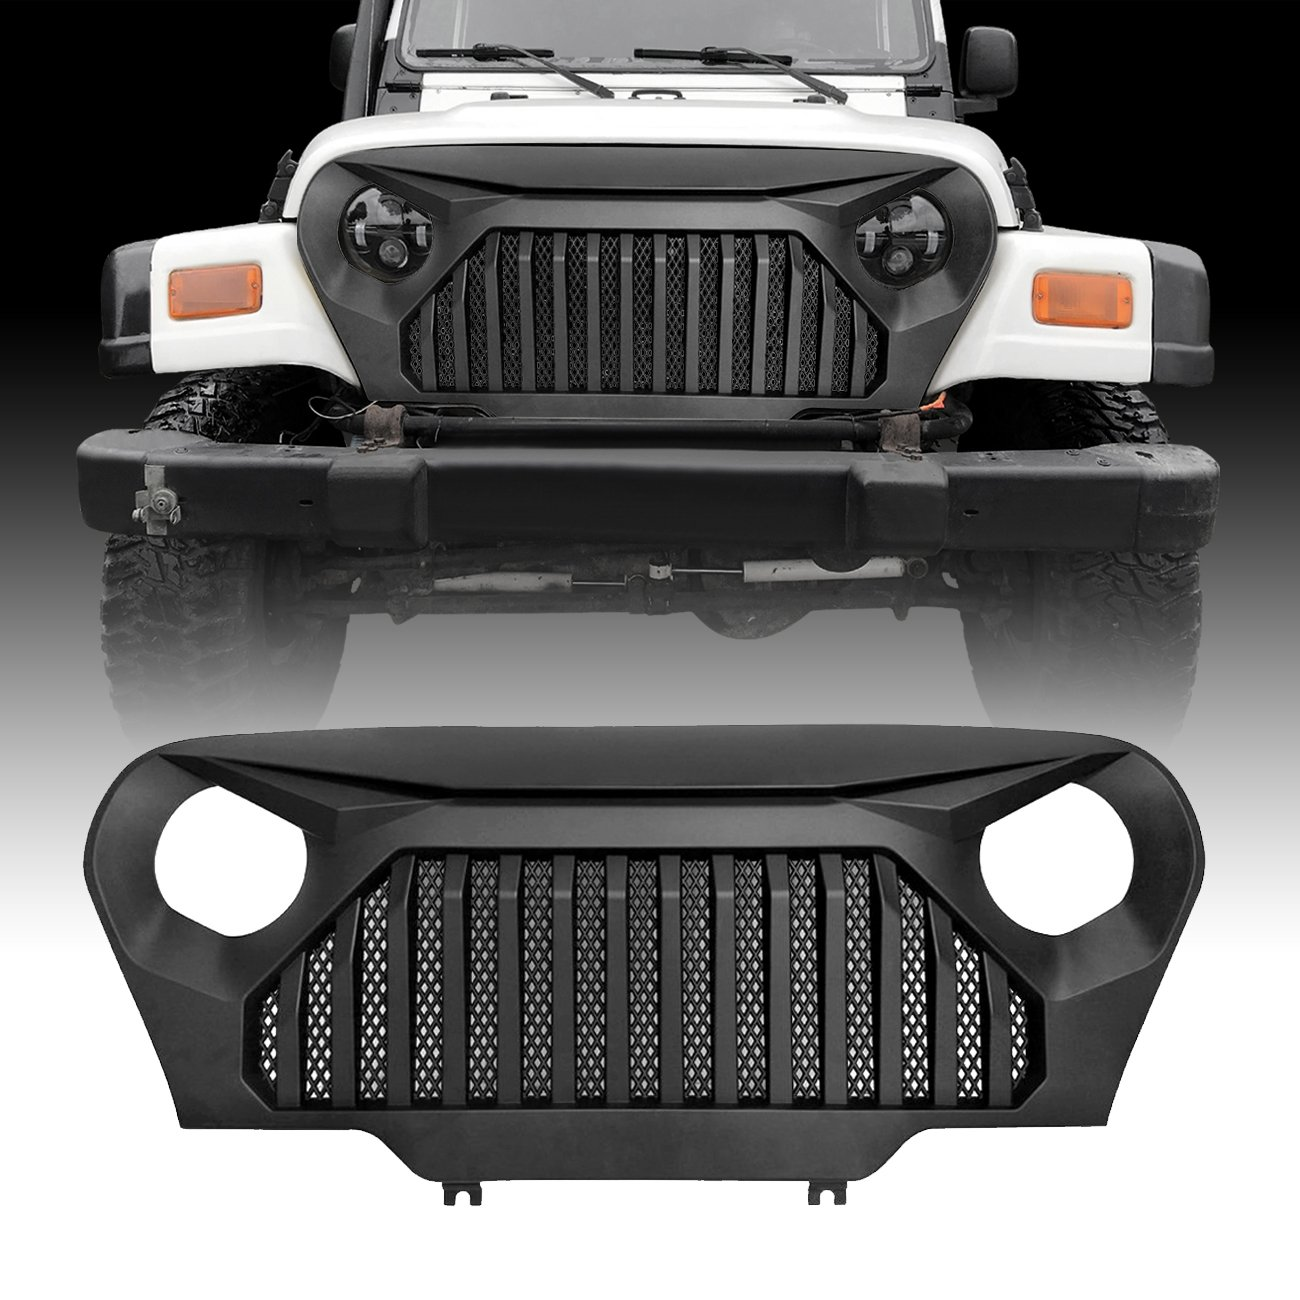 ICARS Matte Black Mesh Grill Inserts Grille Guard Square Style for 1997-2006 Jeep Wrangler TJ Unlimited Rubicon Sahara 7PCS